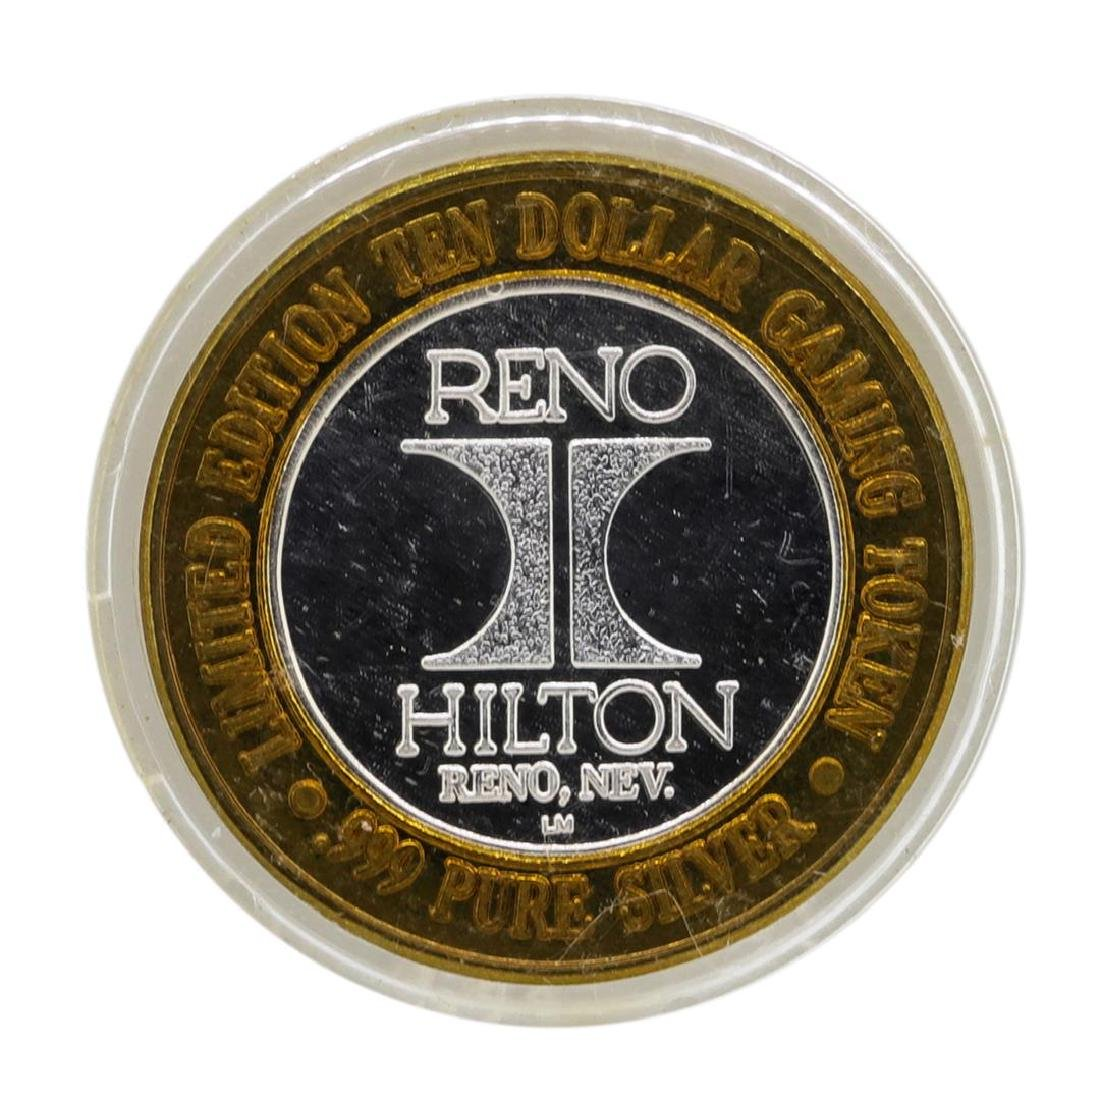 .999 Silver Hilton Reno, Nevada $10 Casino Limited - 2